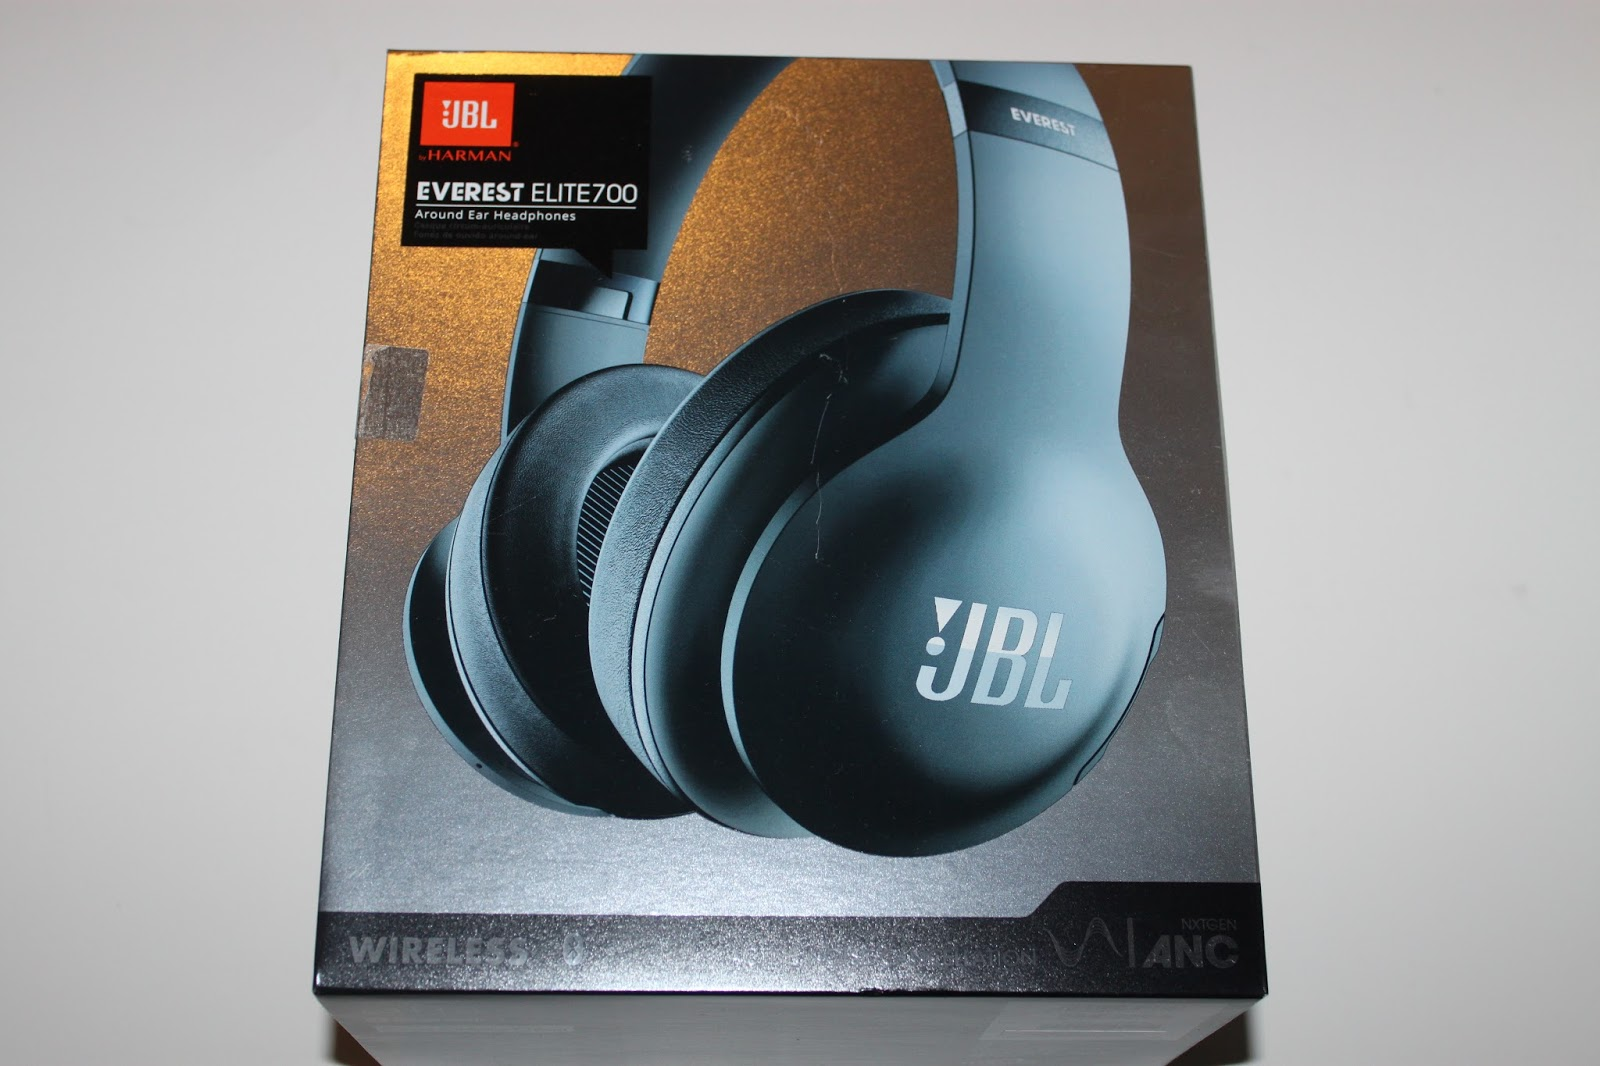 Stereowise Plus May 2016 30mw True Ground Class G Headphone Amplifier With Volume Control And Trunote Is An Auto Sound Calibration So You Can Calibrate It To Your Personal Preference Theres Even A Jbl Headphones App